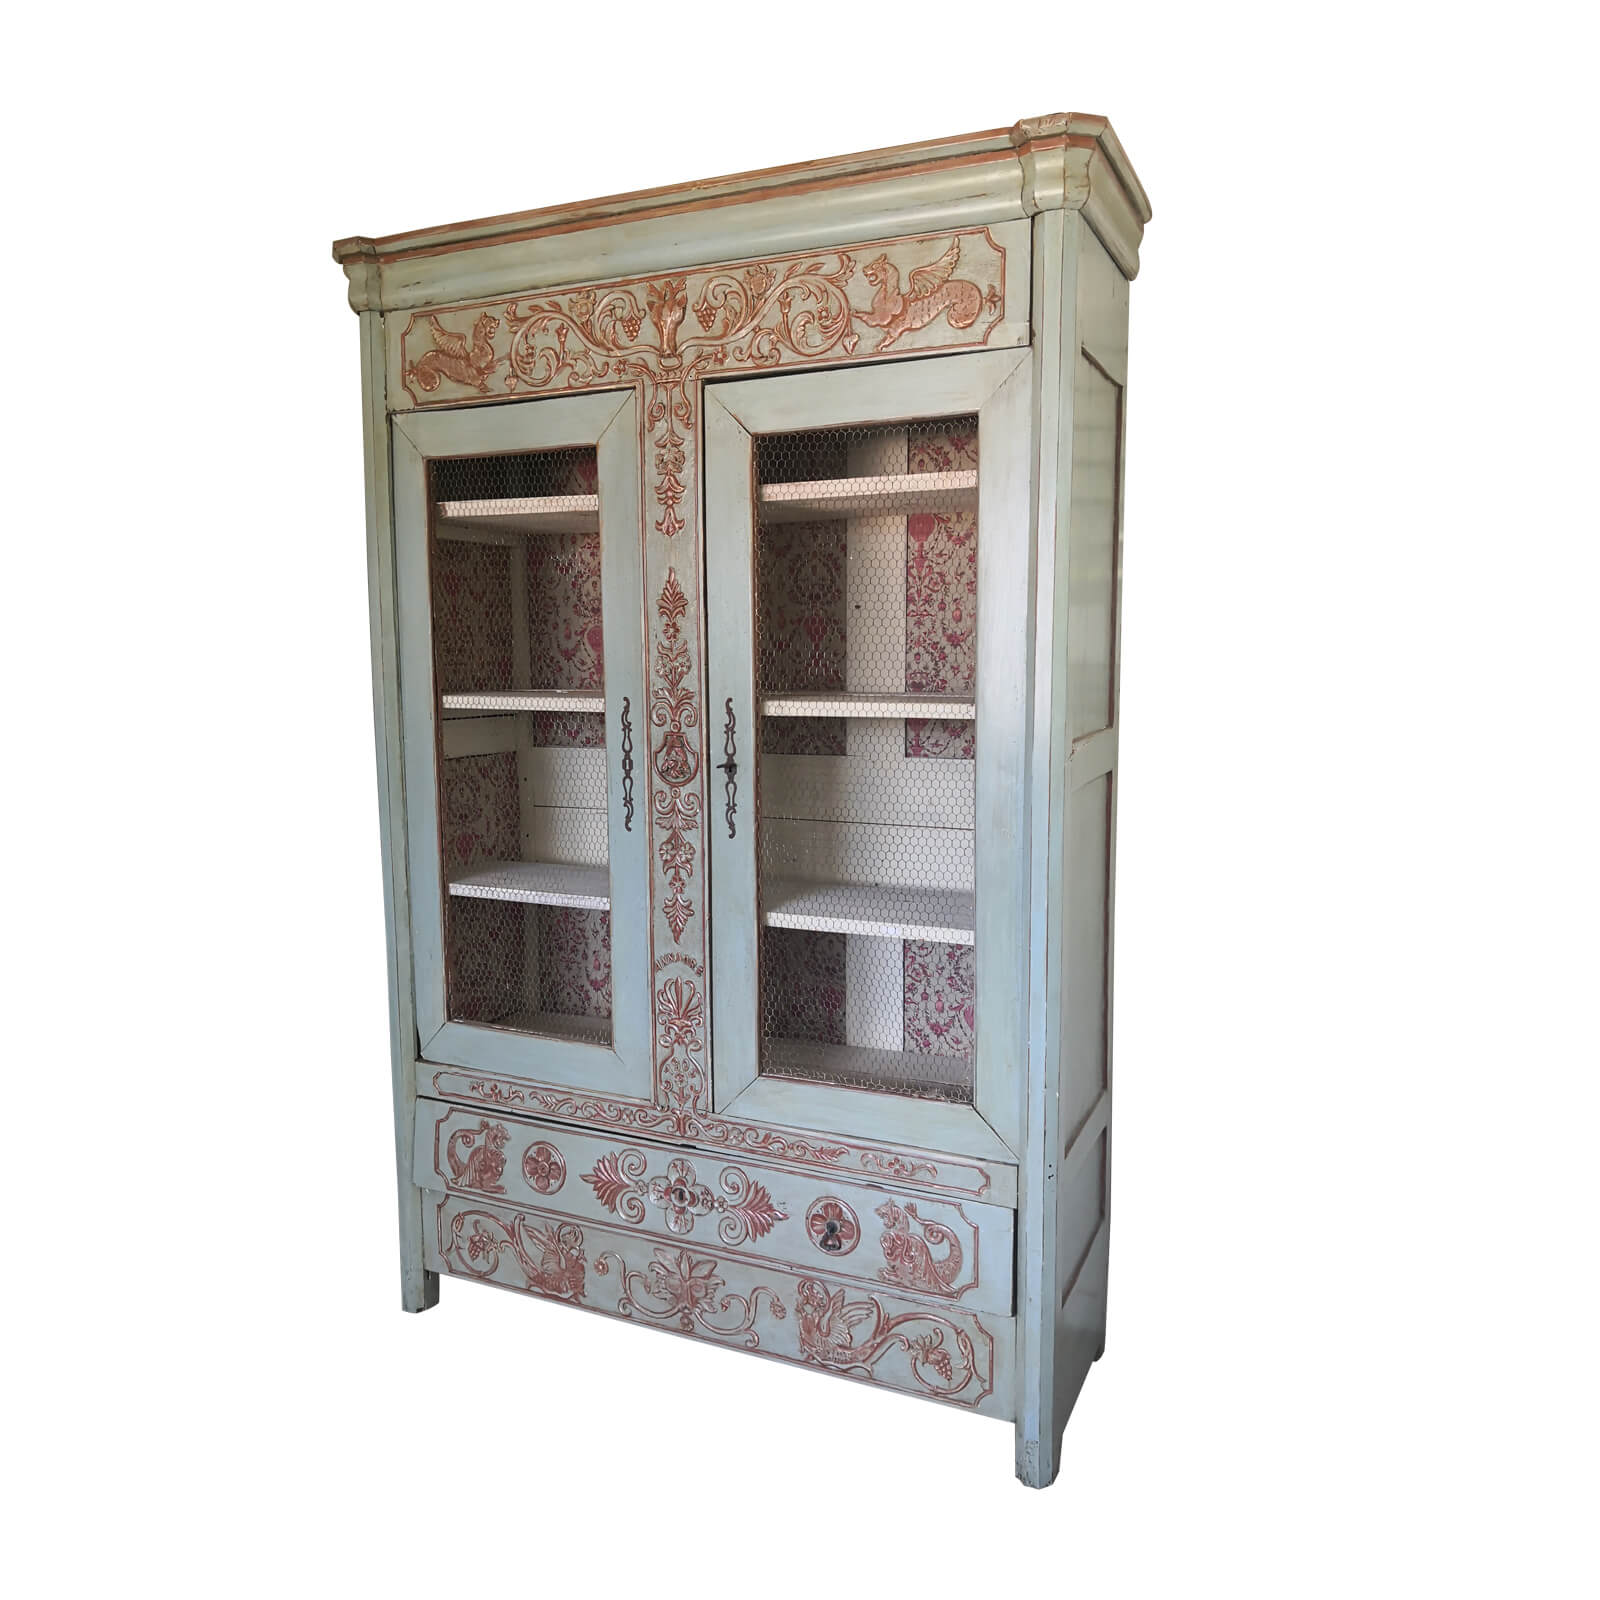 Two Design Lovers Antique French Armoire 1